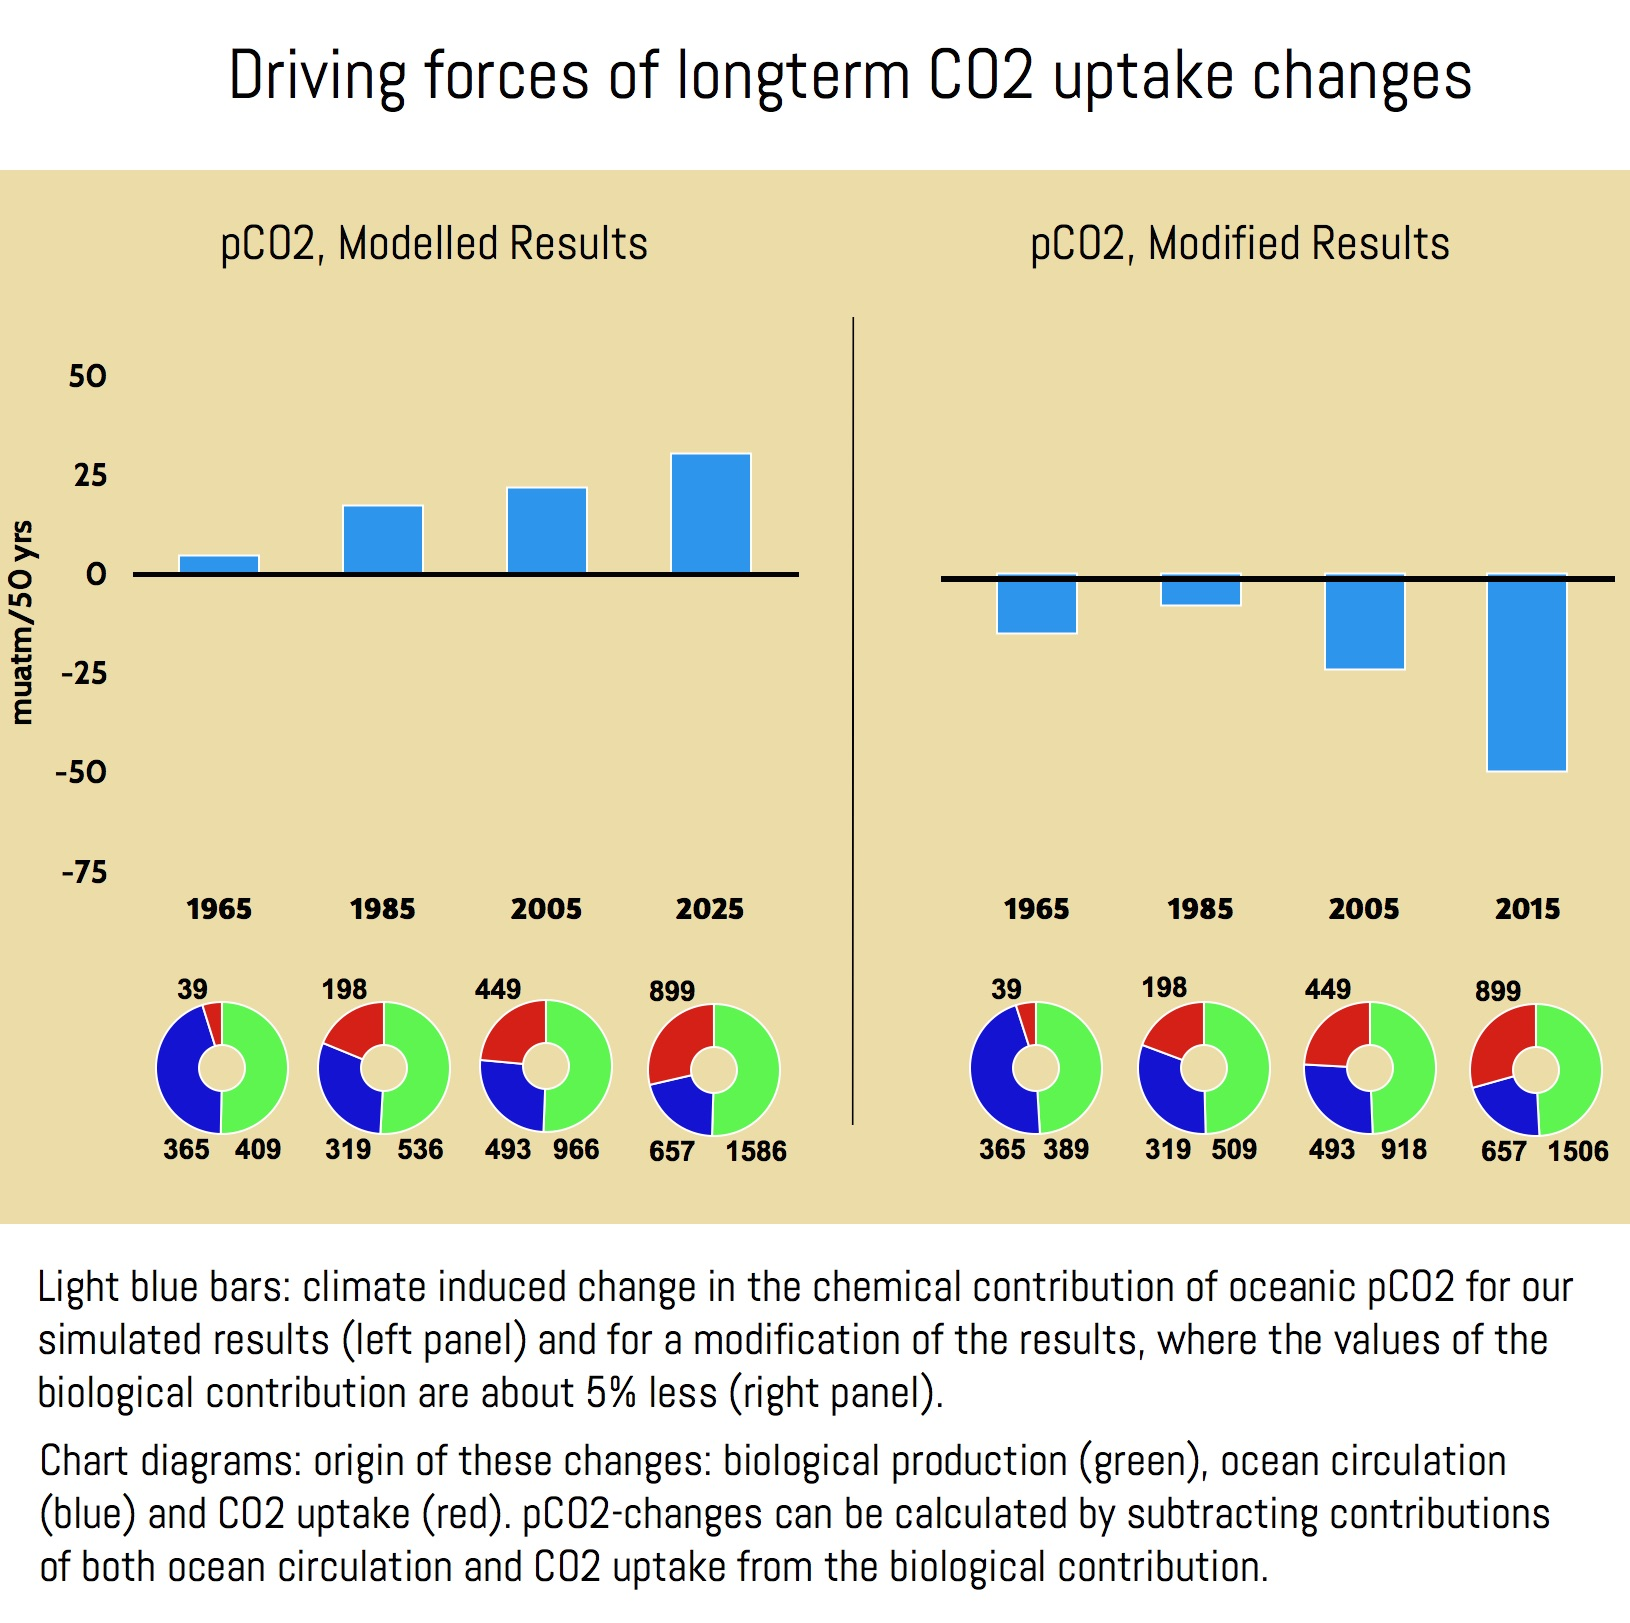 Infographics on driving forces of longterm CO2 uptake, by Nadine Goris